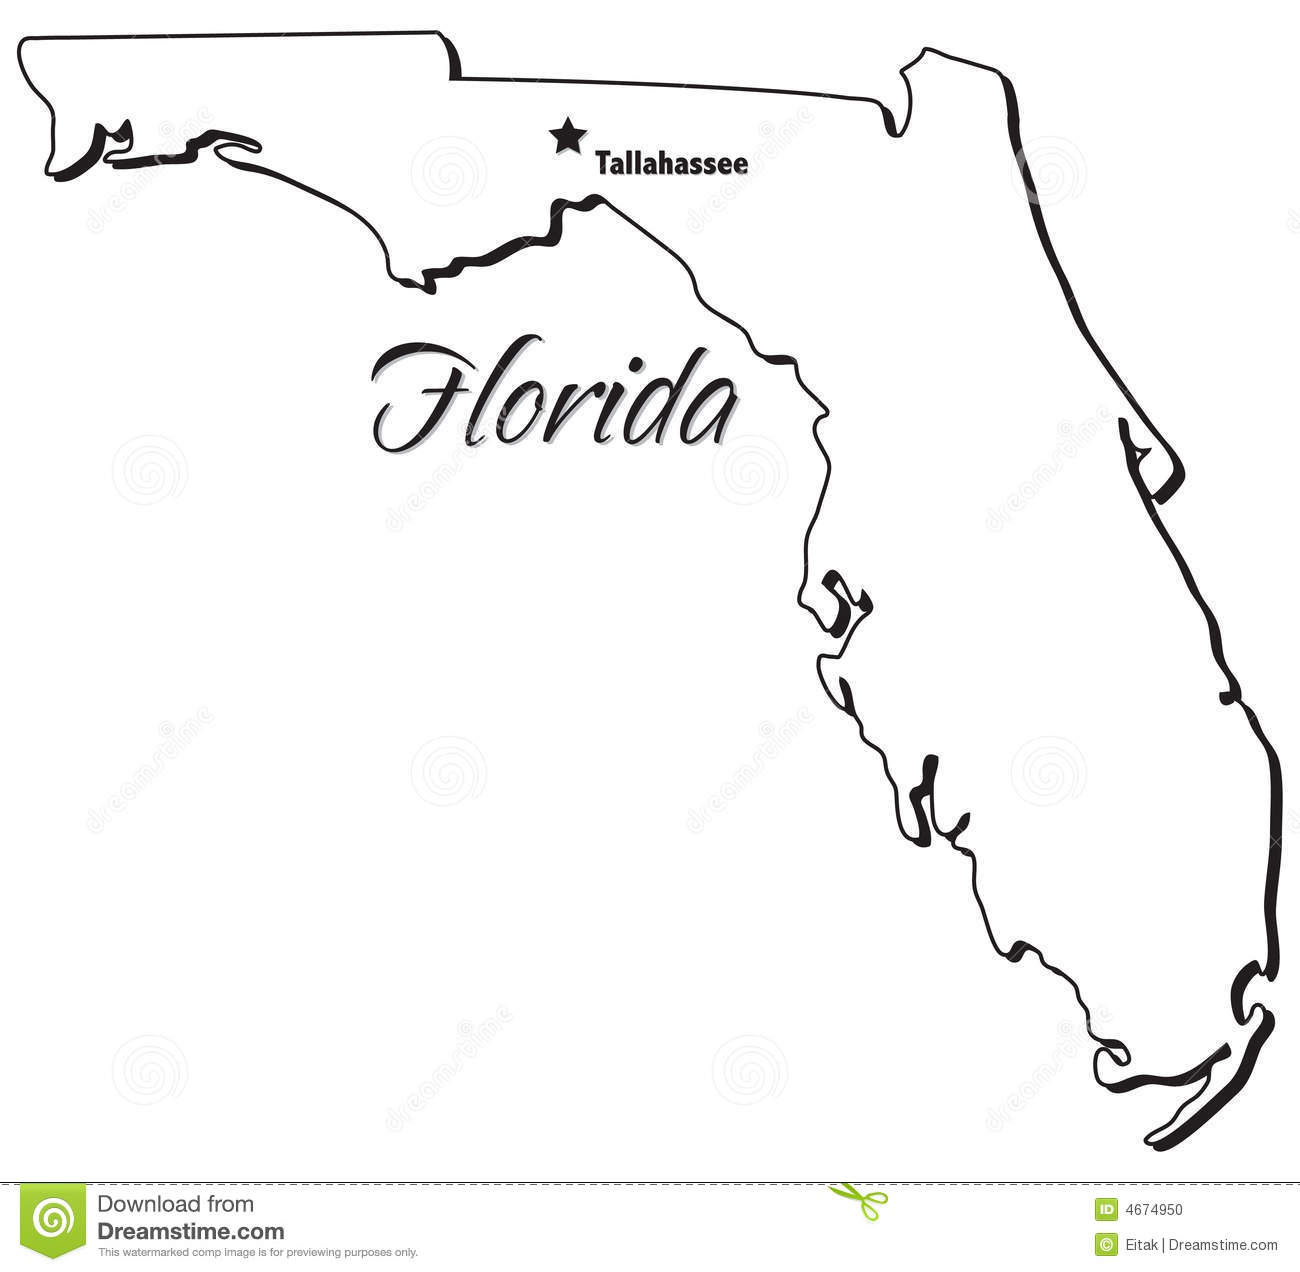 Florida state map clipart banner black and white library Outline Map Of Florida State With Florida Map Clipart ~ Free ... banner black and white library